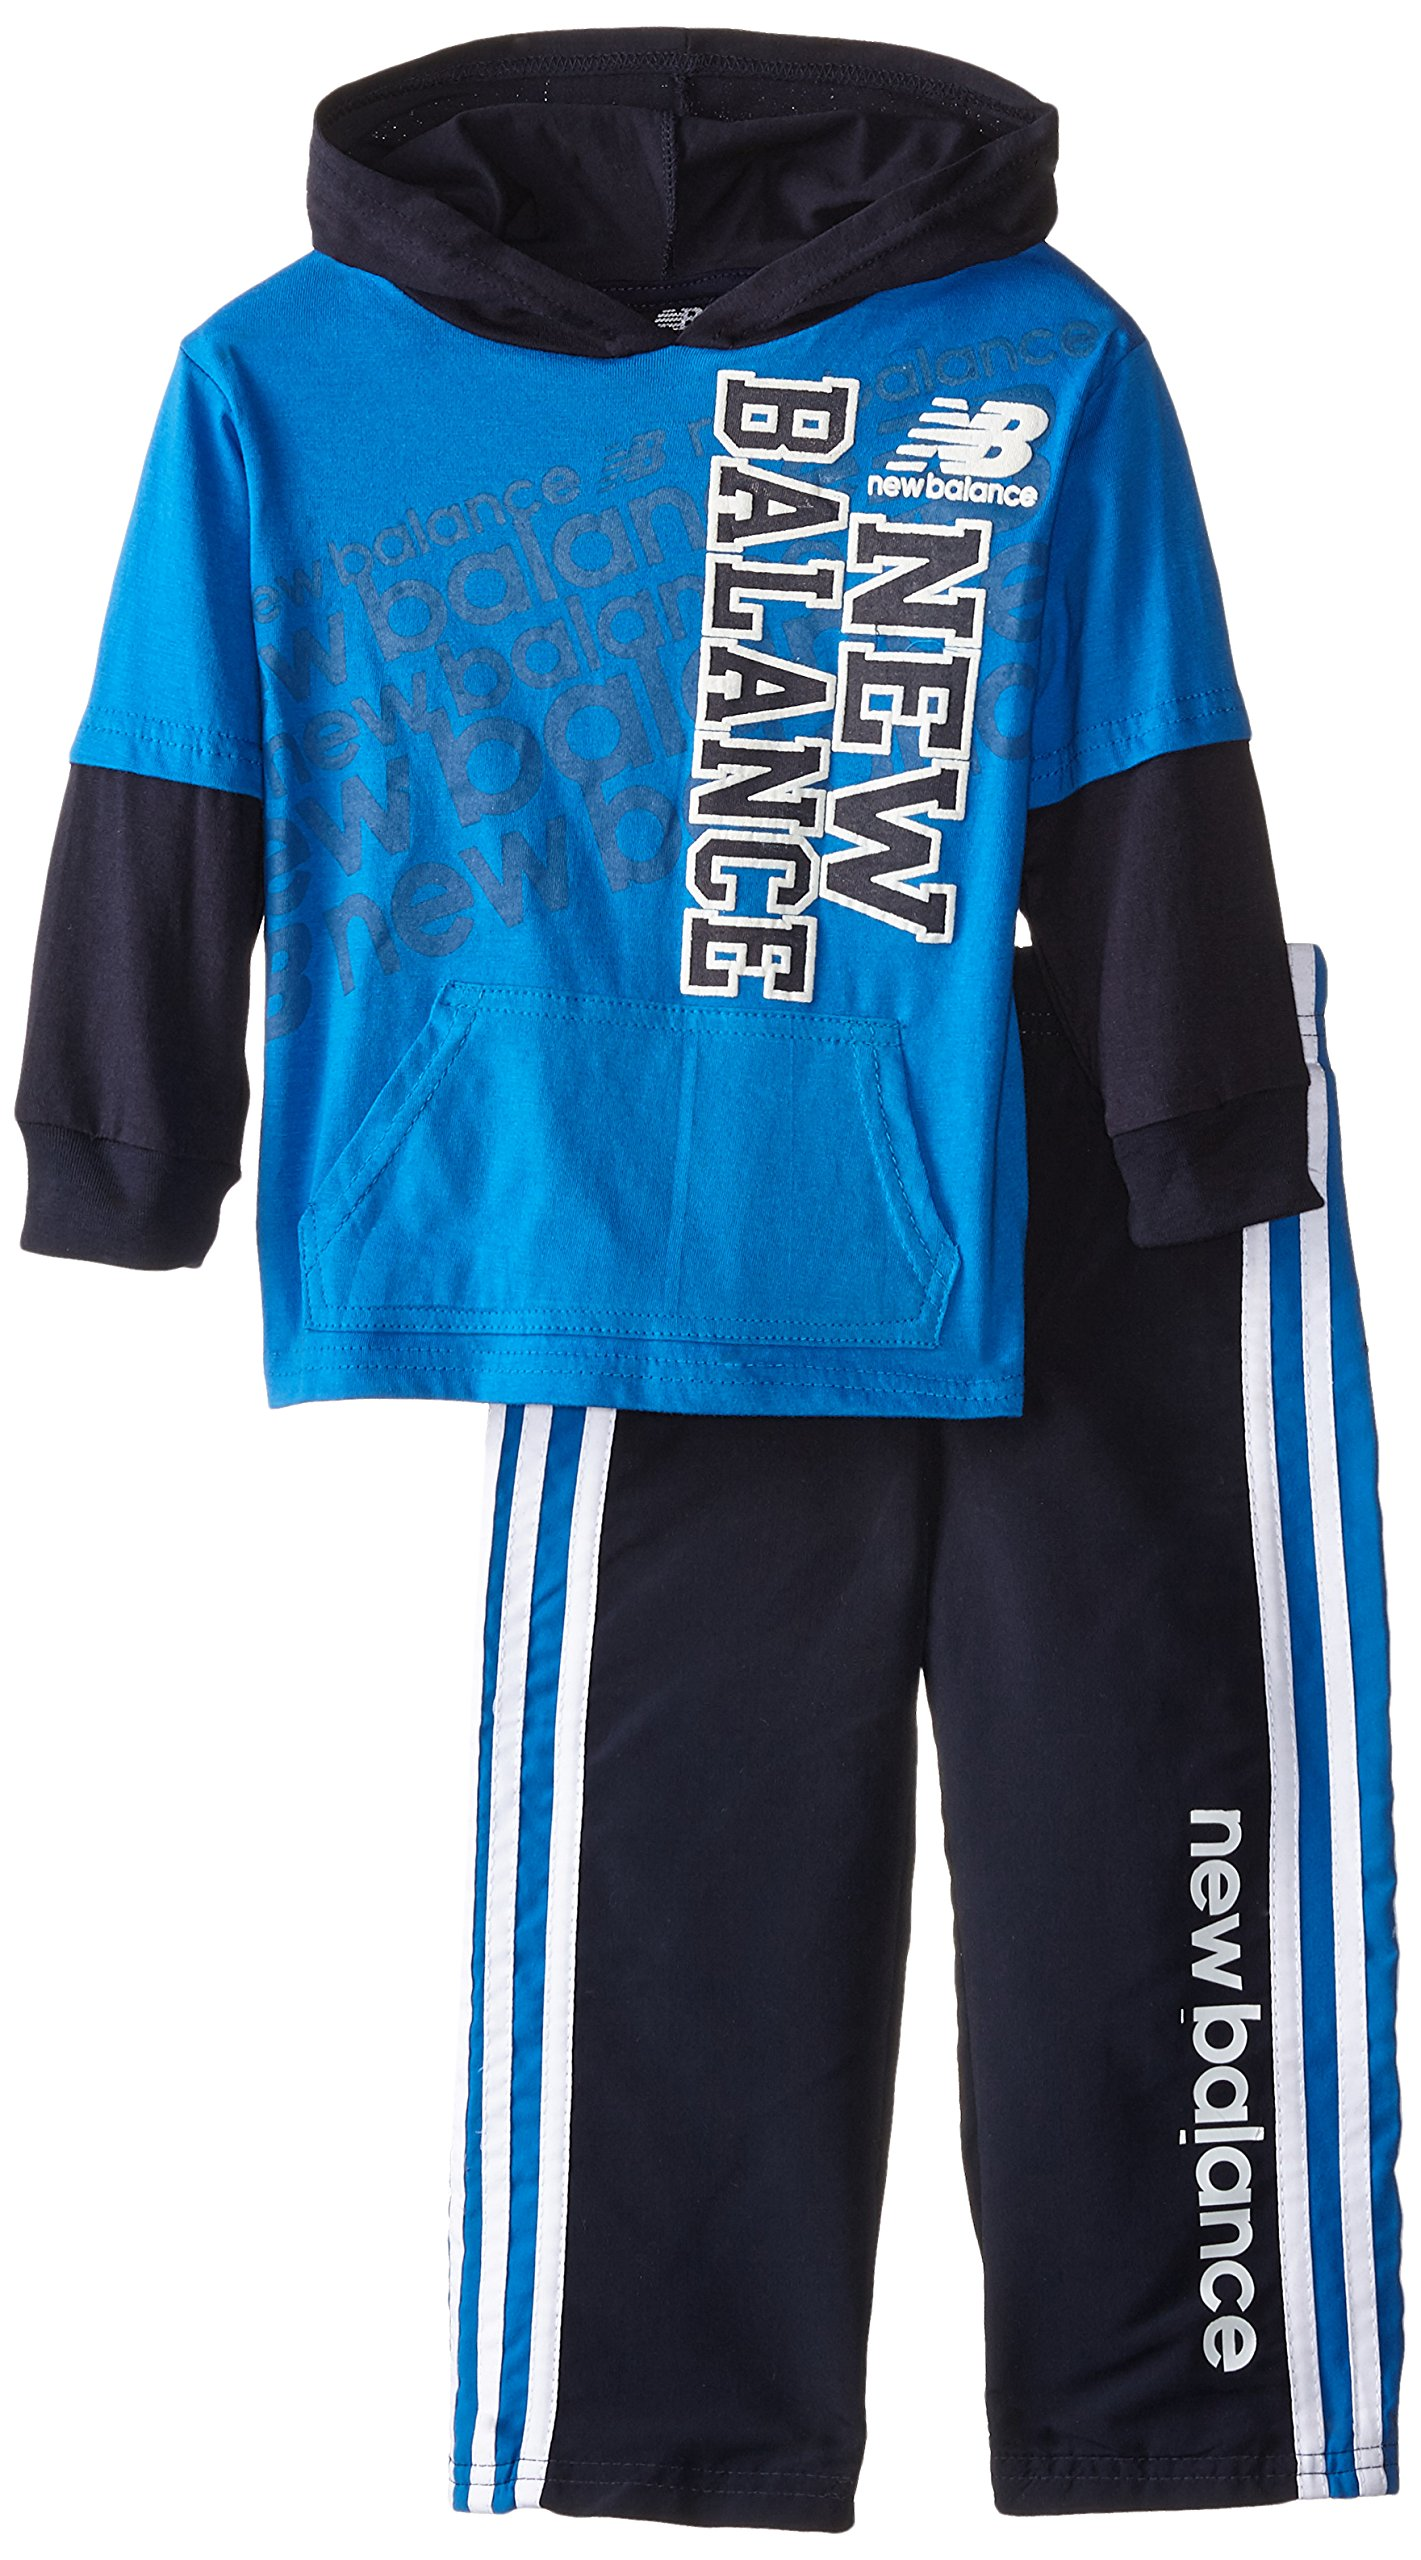 New Balance Little Boys' 2 Piece Drop Down Hoodie and Pant Set, Navy, 2T by New Balance